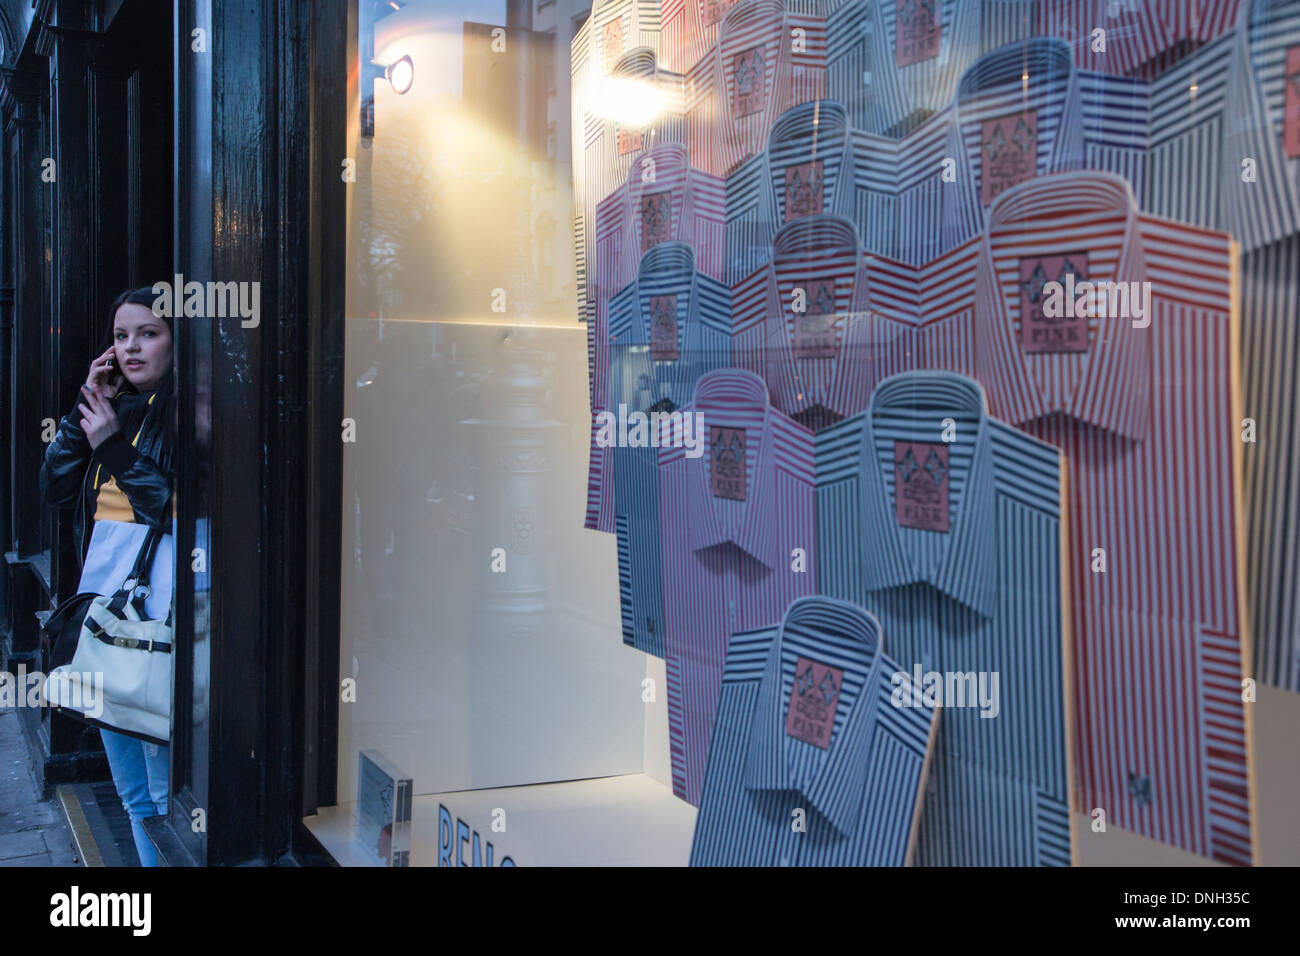 BENGAL STRIPES SHIRT SHOP, THE DAWSON STREET SHOPPING AREA, DUBLIN, IRELAND - Stock Image